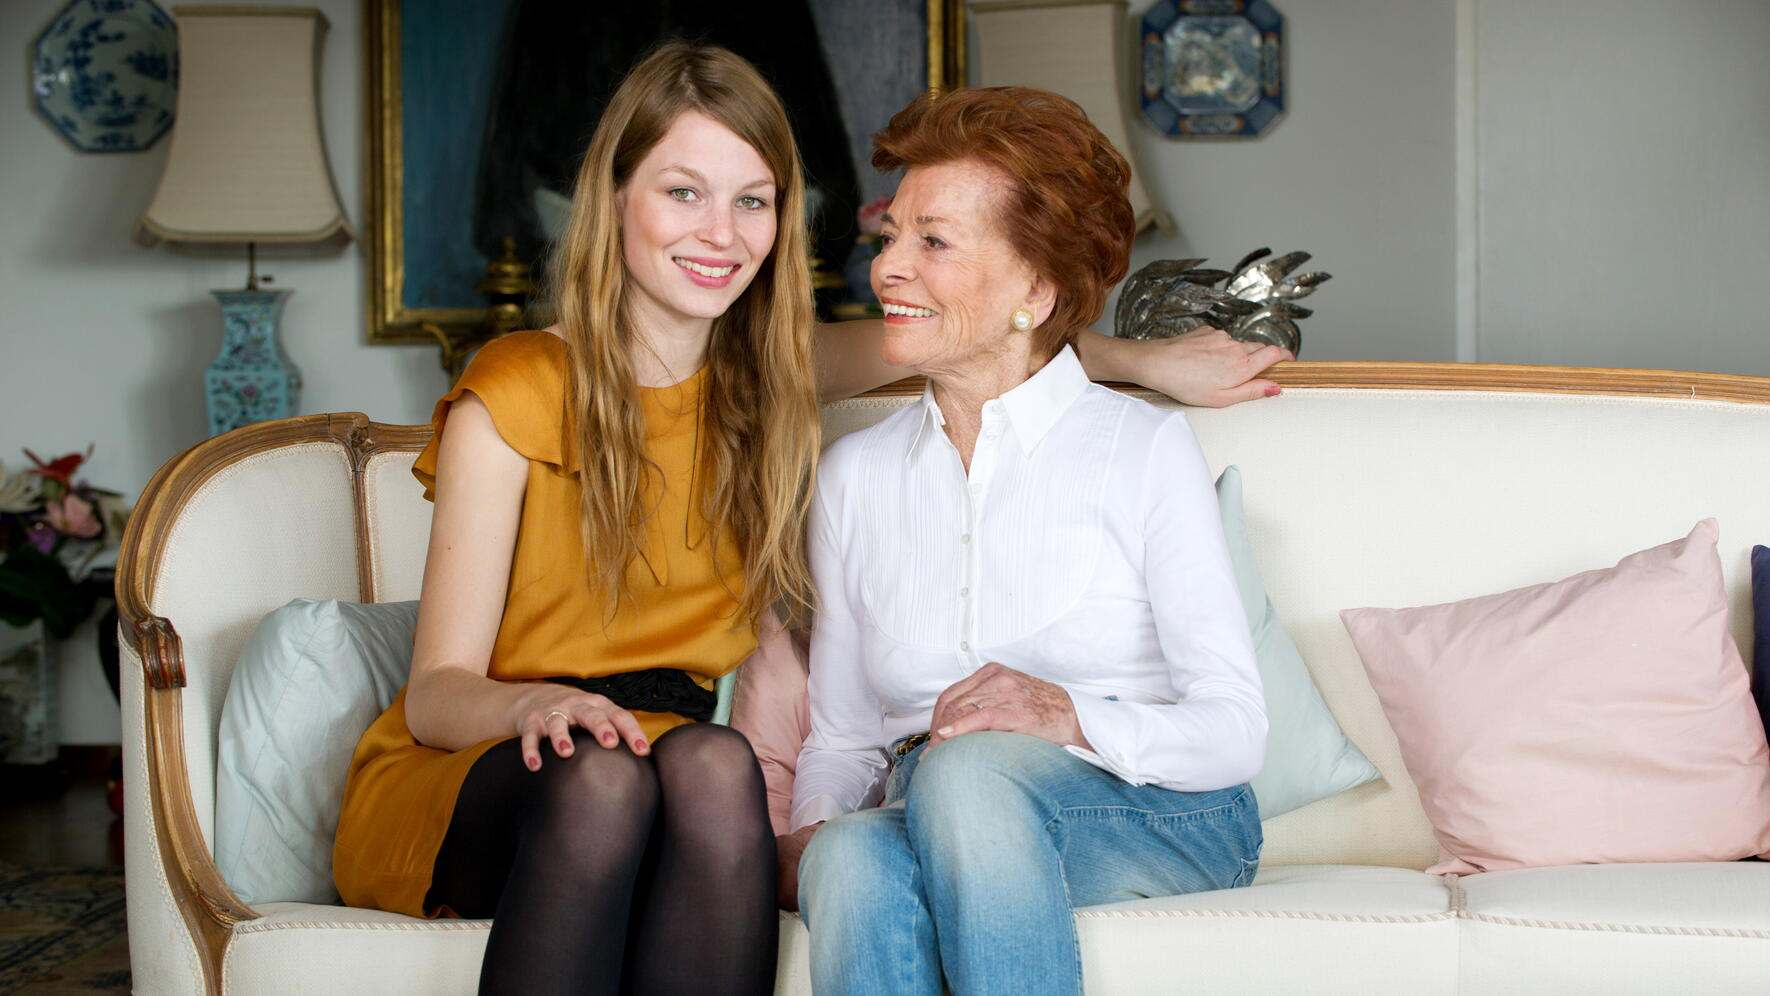 Anna Rossinelli Lys Assia